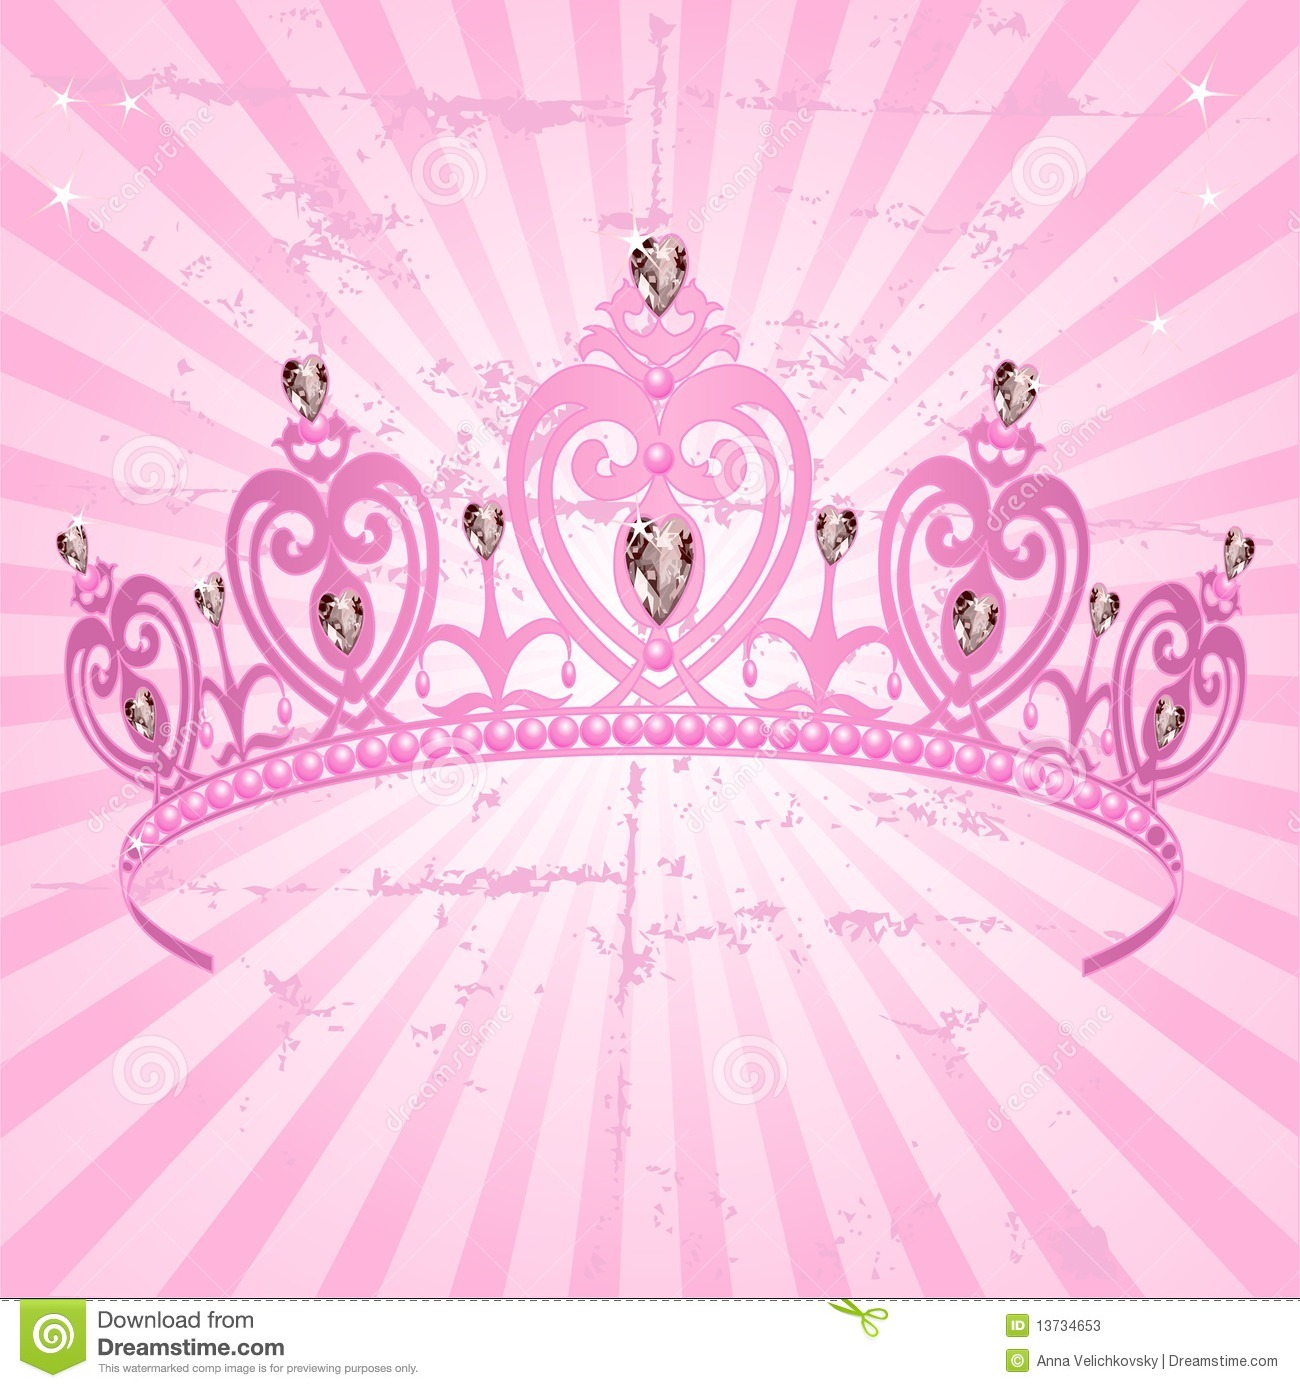 Princess Crown Background Stock Illustrations 21 245 Princess Crown Background Stock Illustrations Vectors Clipart Dreamstime